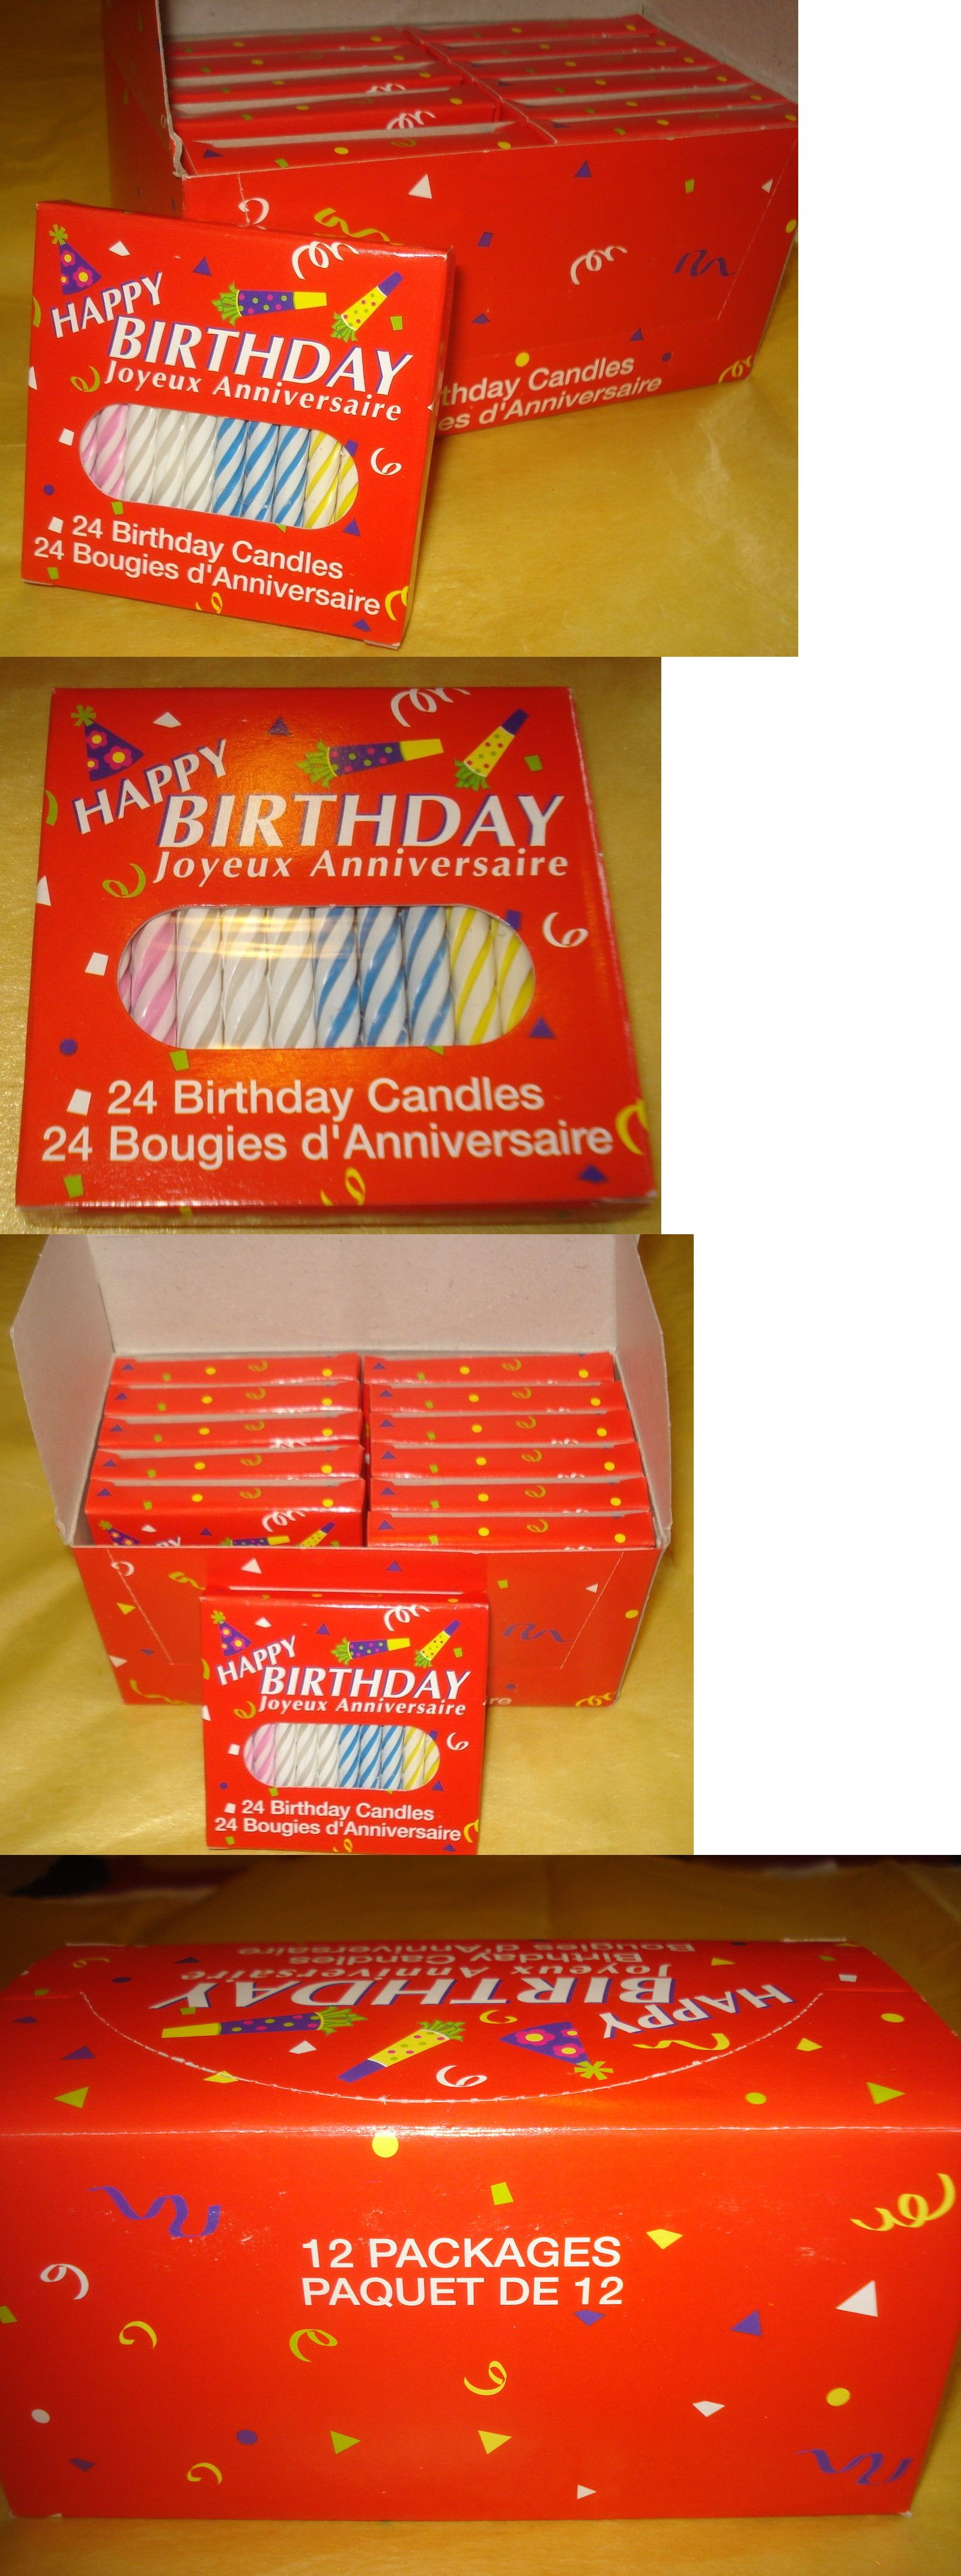 Candles 183342 Box Of 12 Packs Spiral Birthday 24 Each Pack BUY IT NOW ONLY On EBay